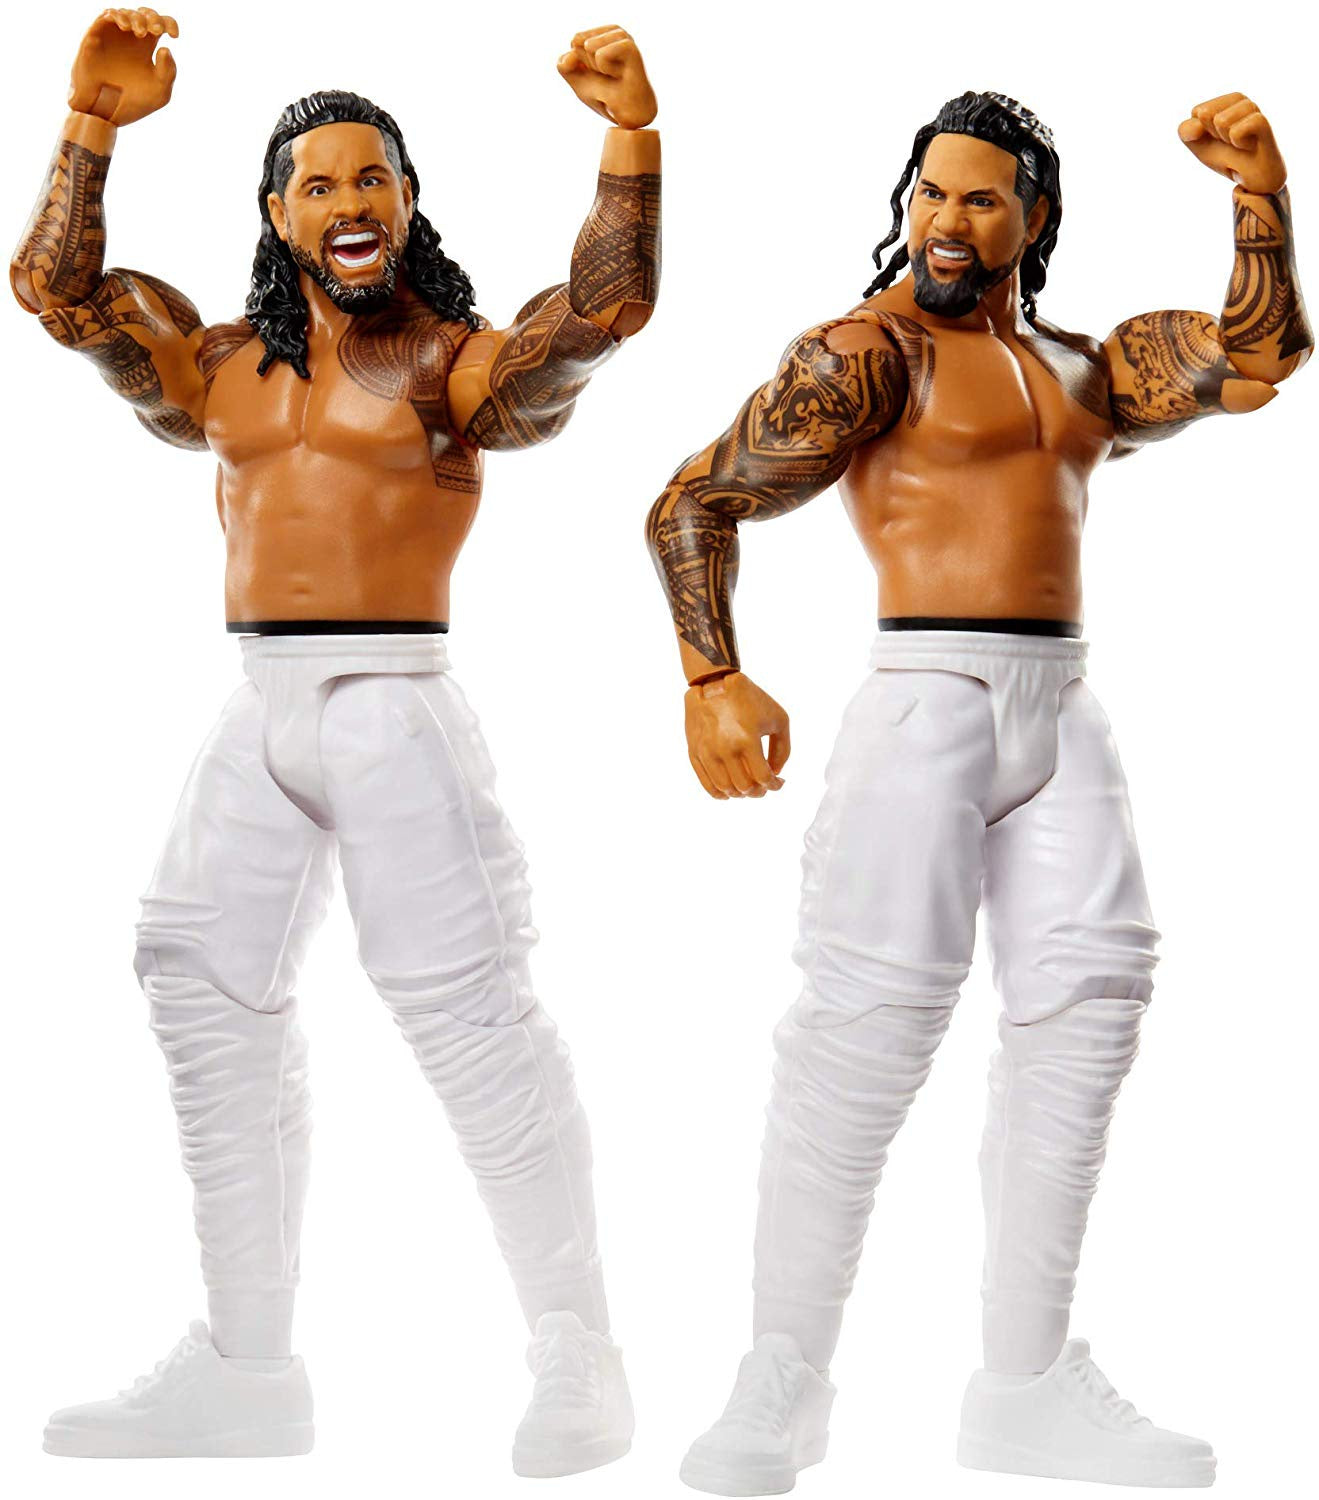 WWE Wrestling Figure Battle Pack Jey Uso And Jimmy Uso